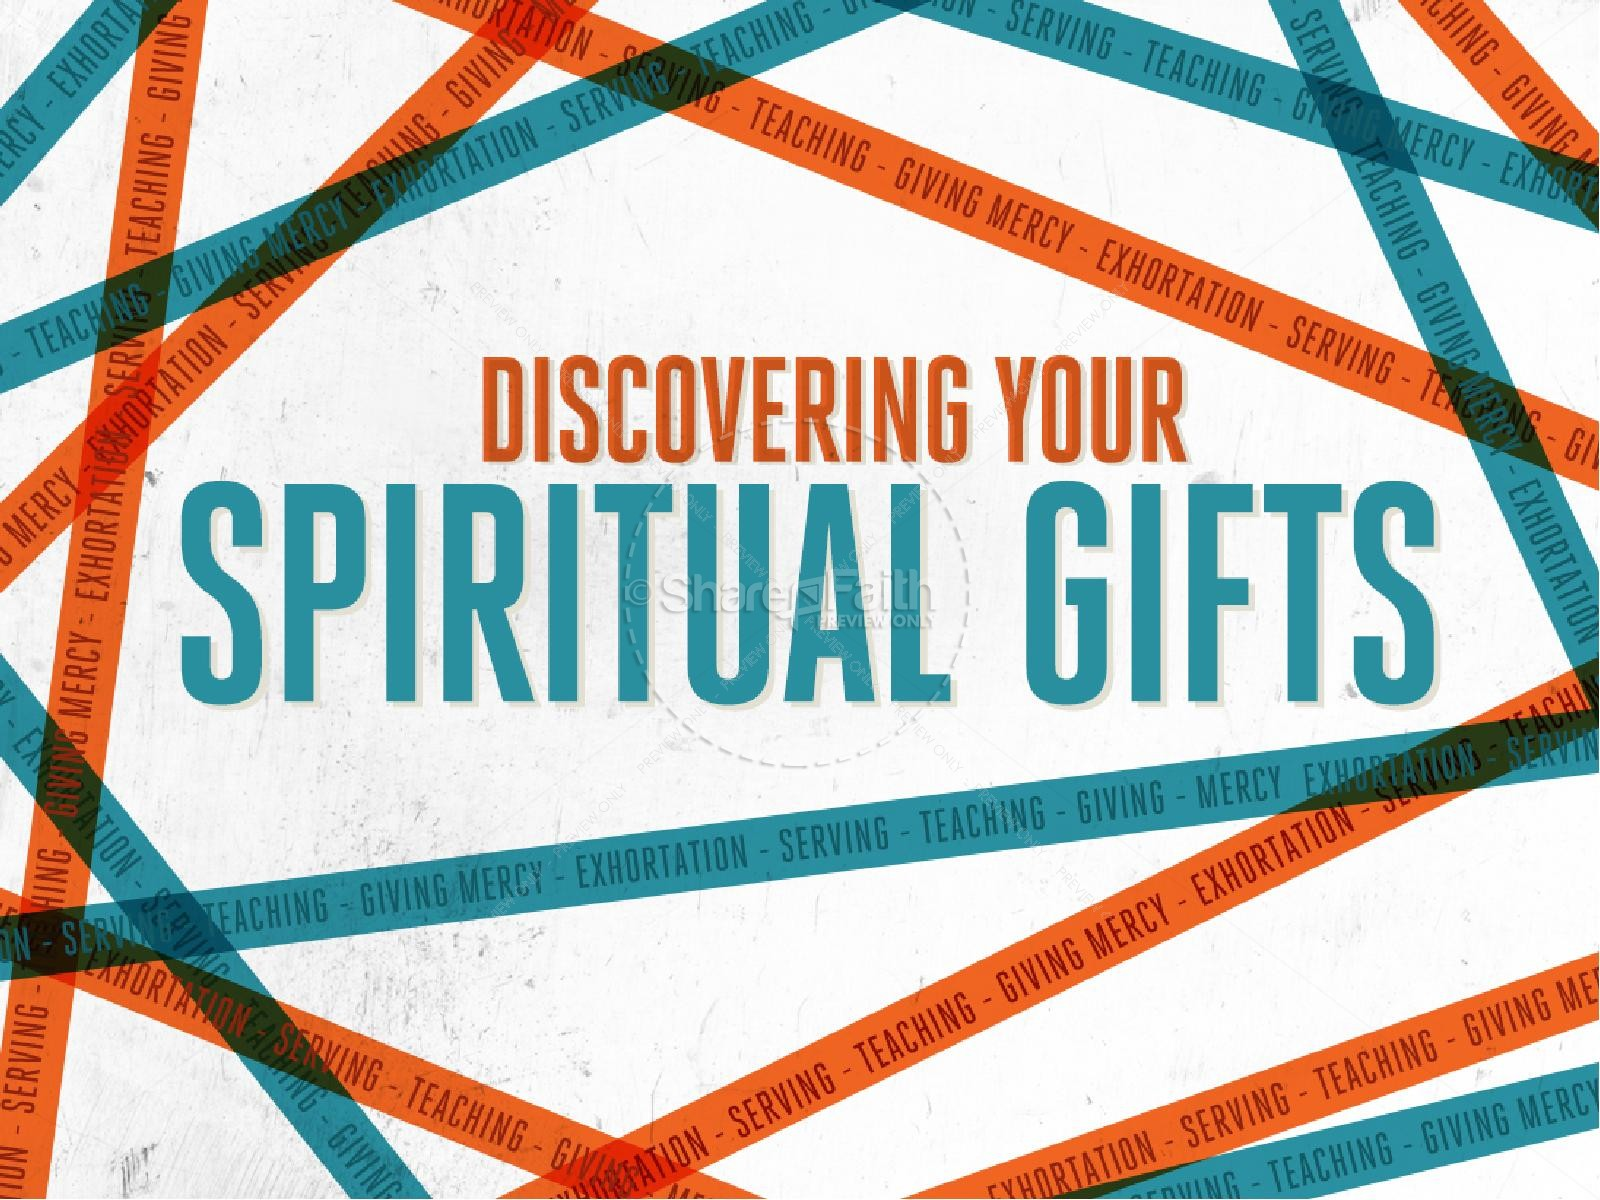 Discovering Your Spiritual Gifts Christian PowerPoint